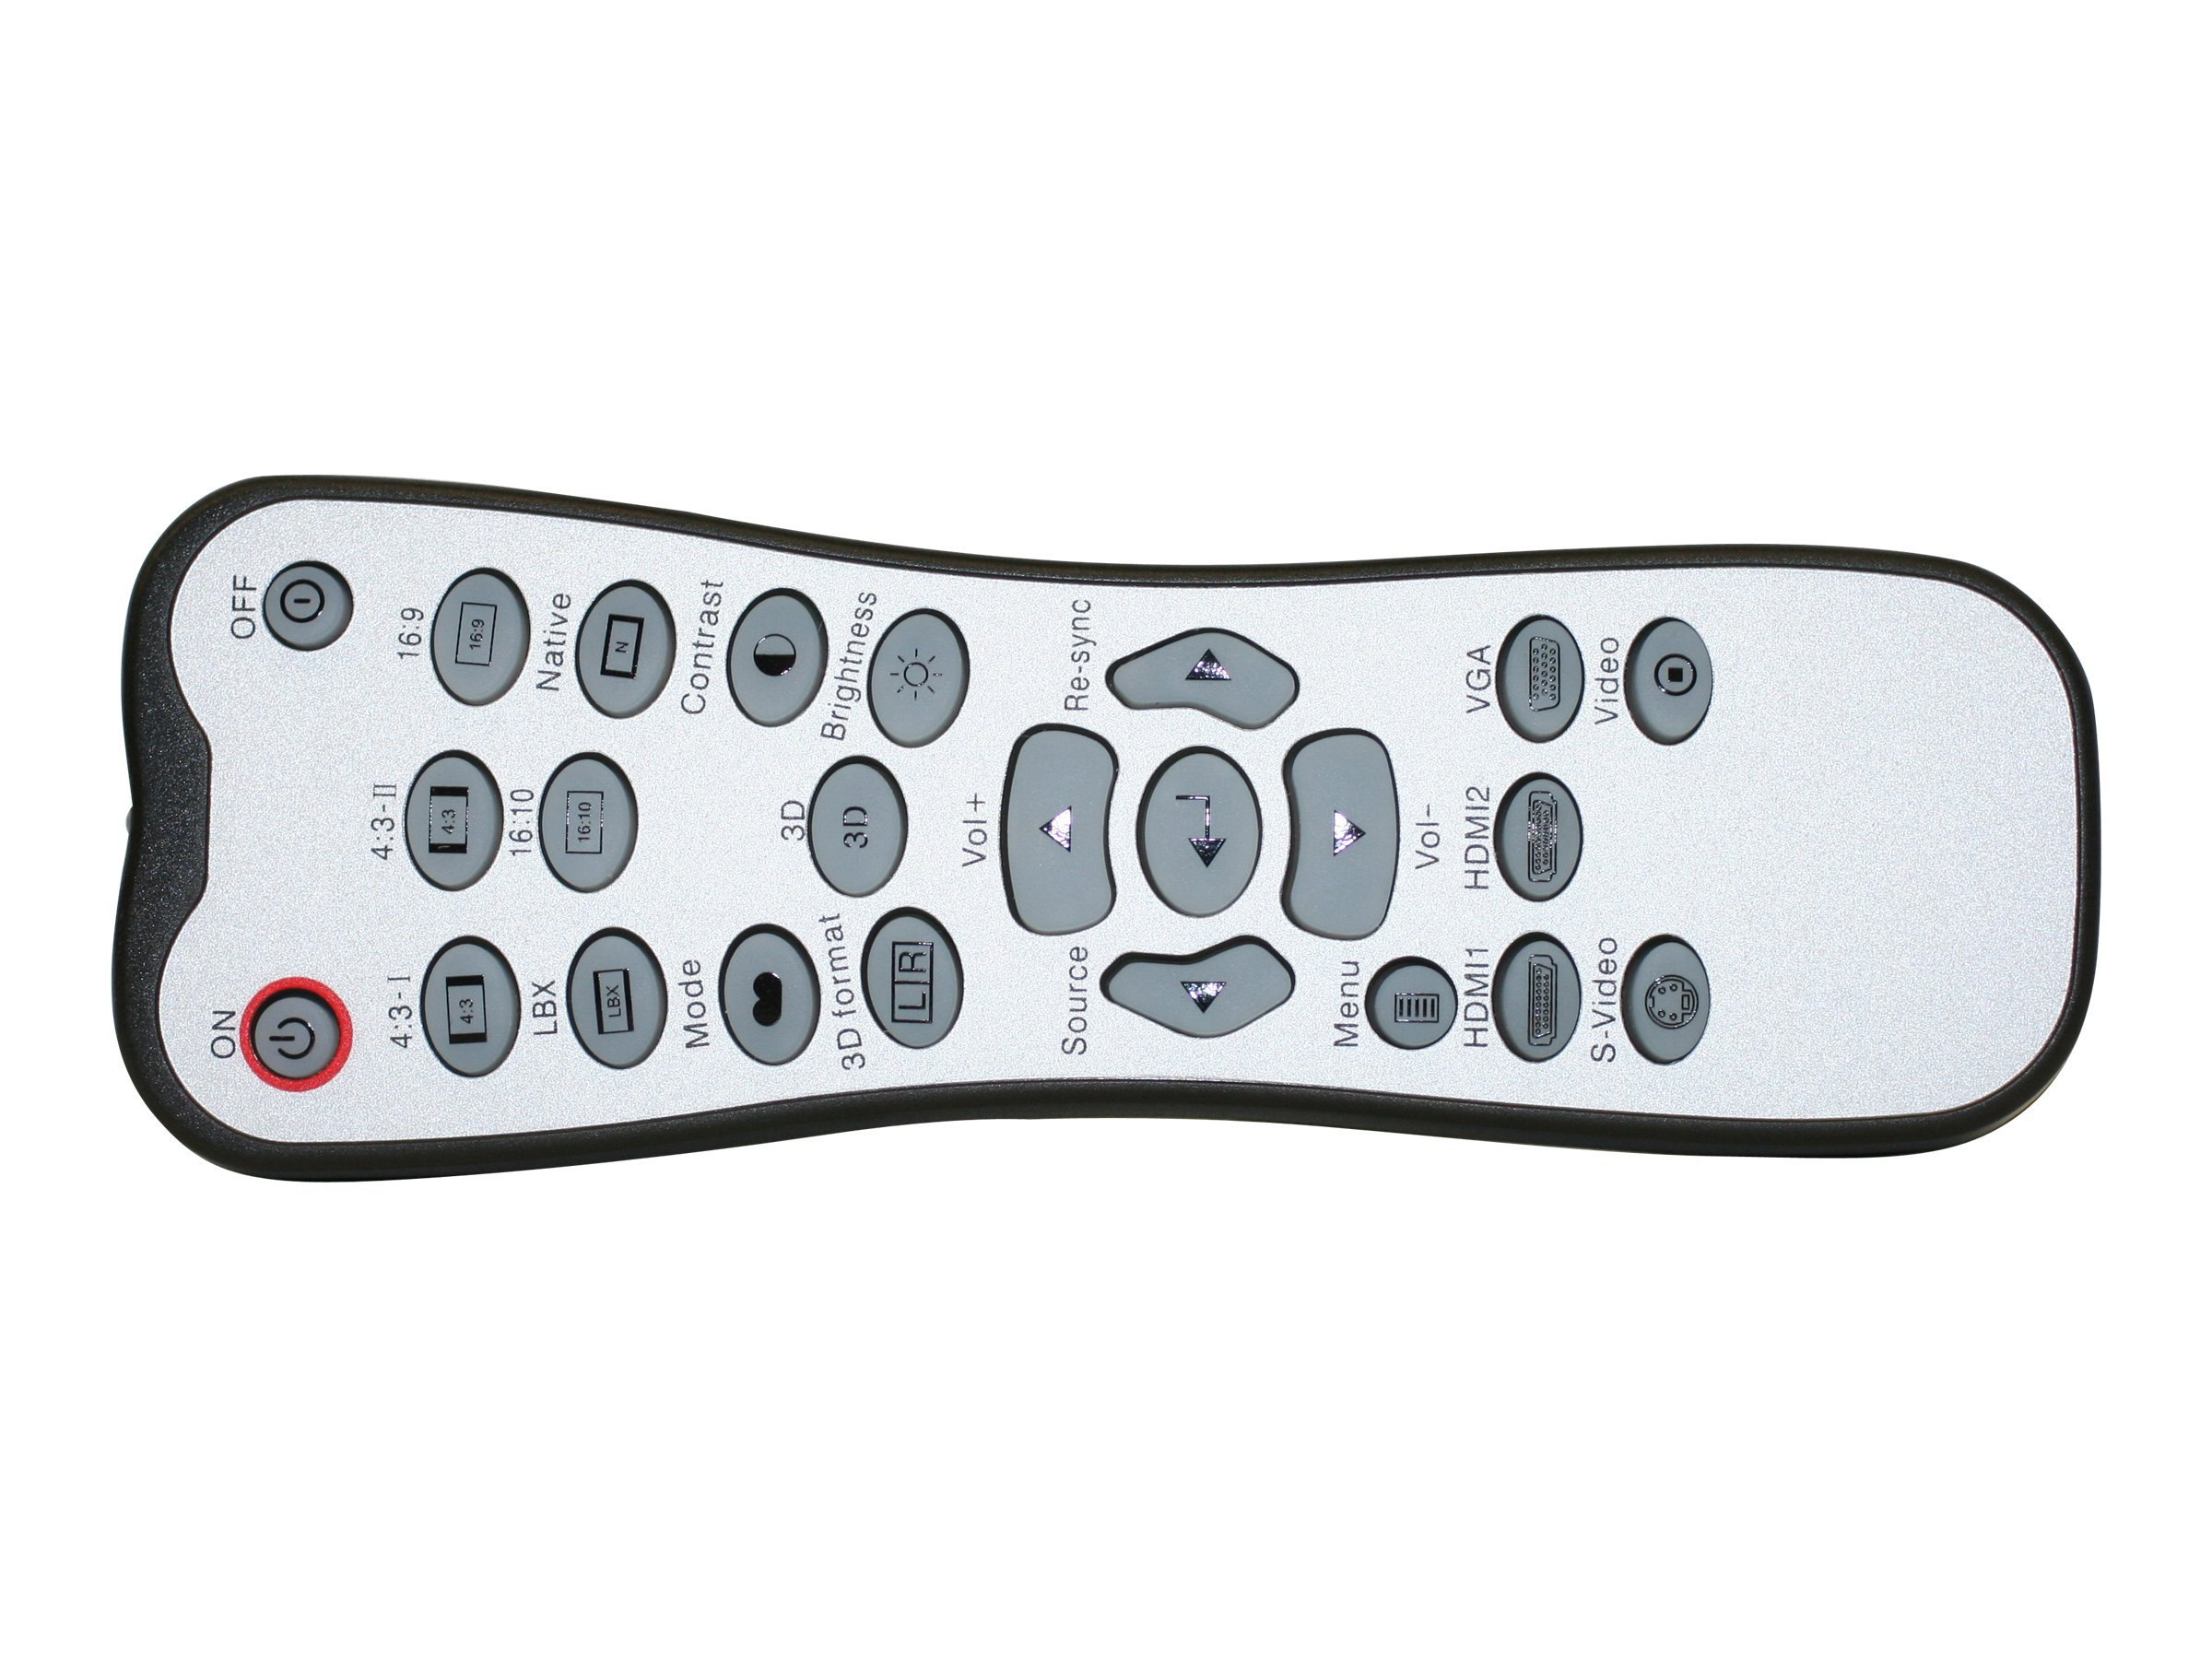 Optoma Remote Control for GT750, SGT750E Projectors, BR-3059N, 13373383, Projector Accessories